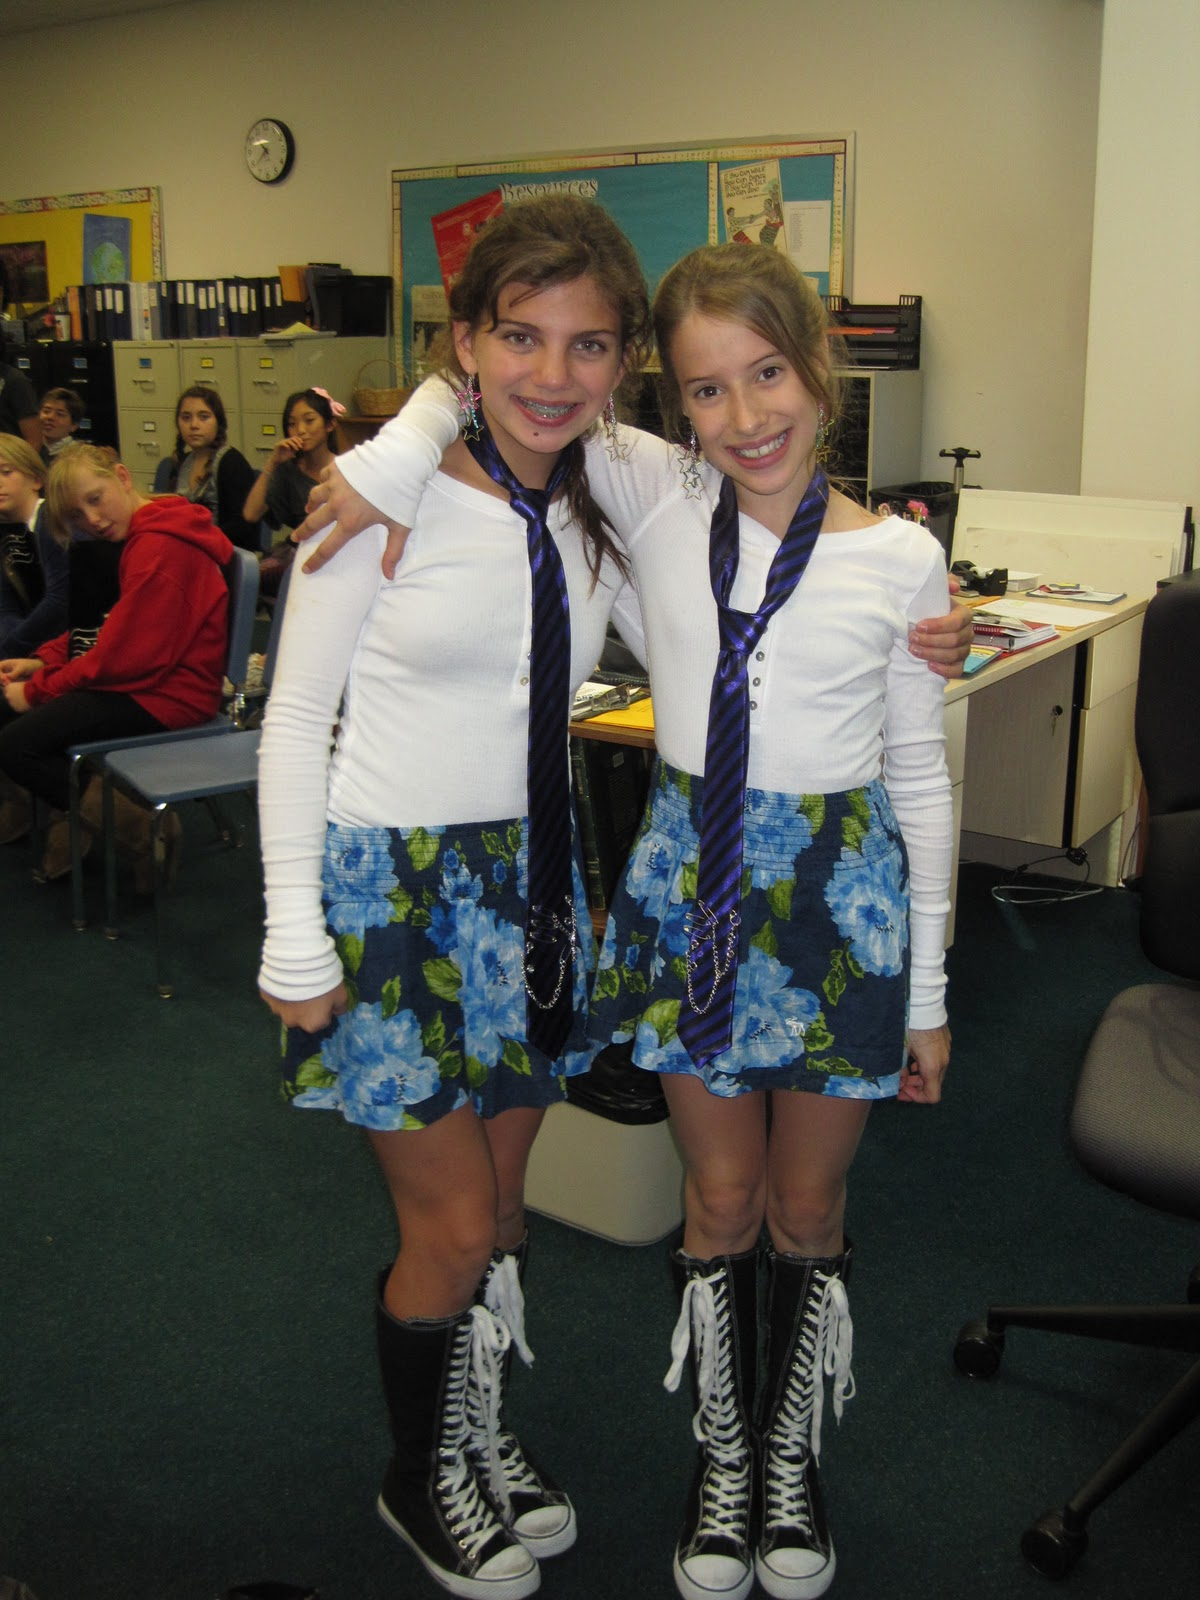 Twin Day Costume Ideas http://allthingsaro.blogspot.com/2010_11_01_archive.html